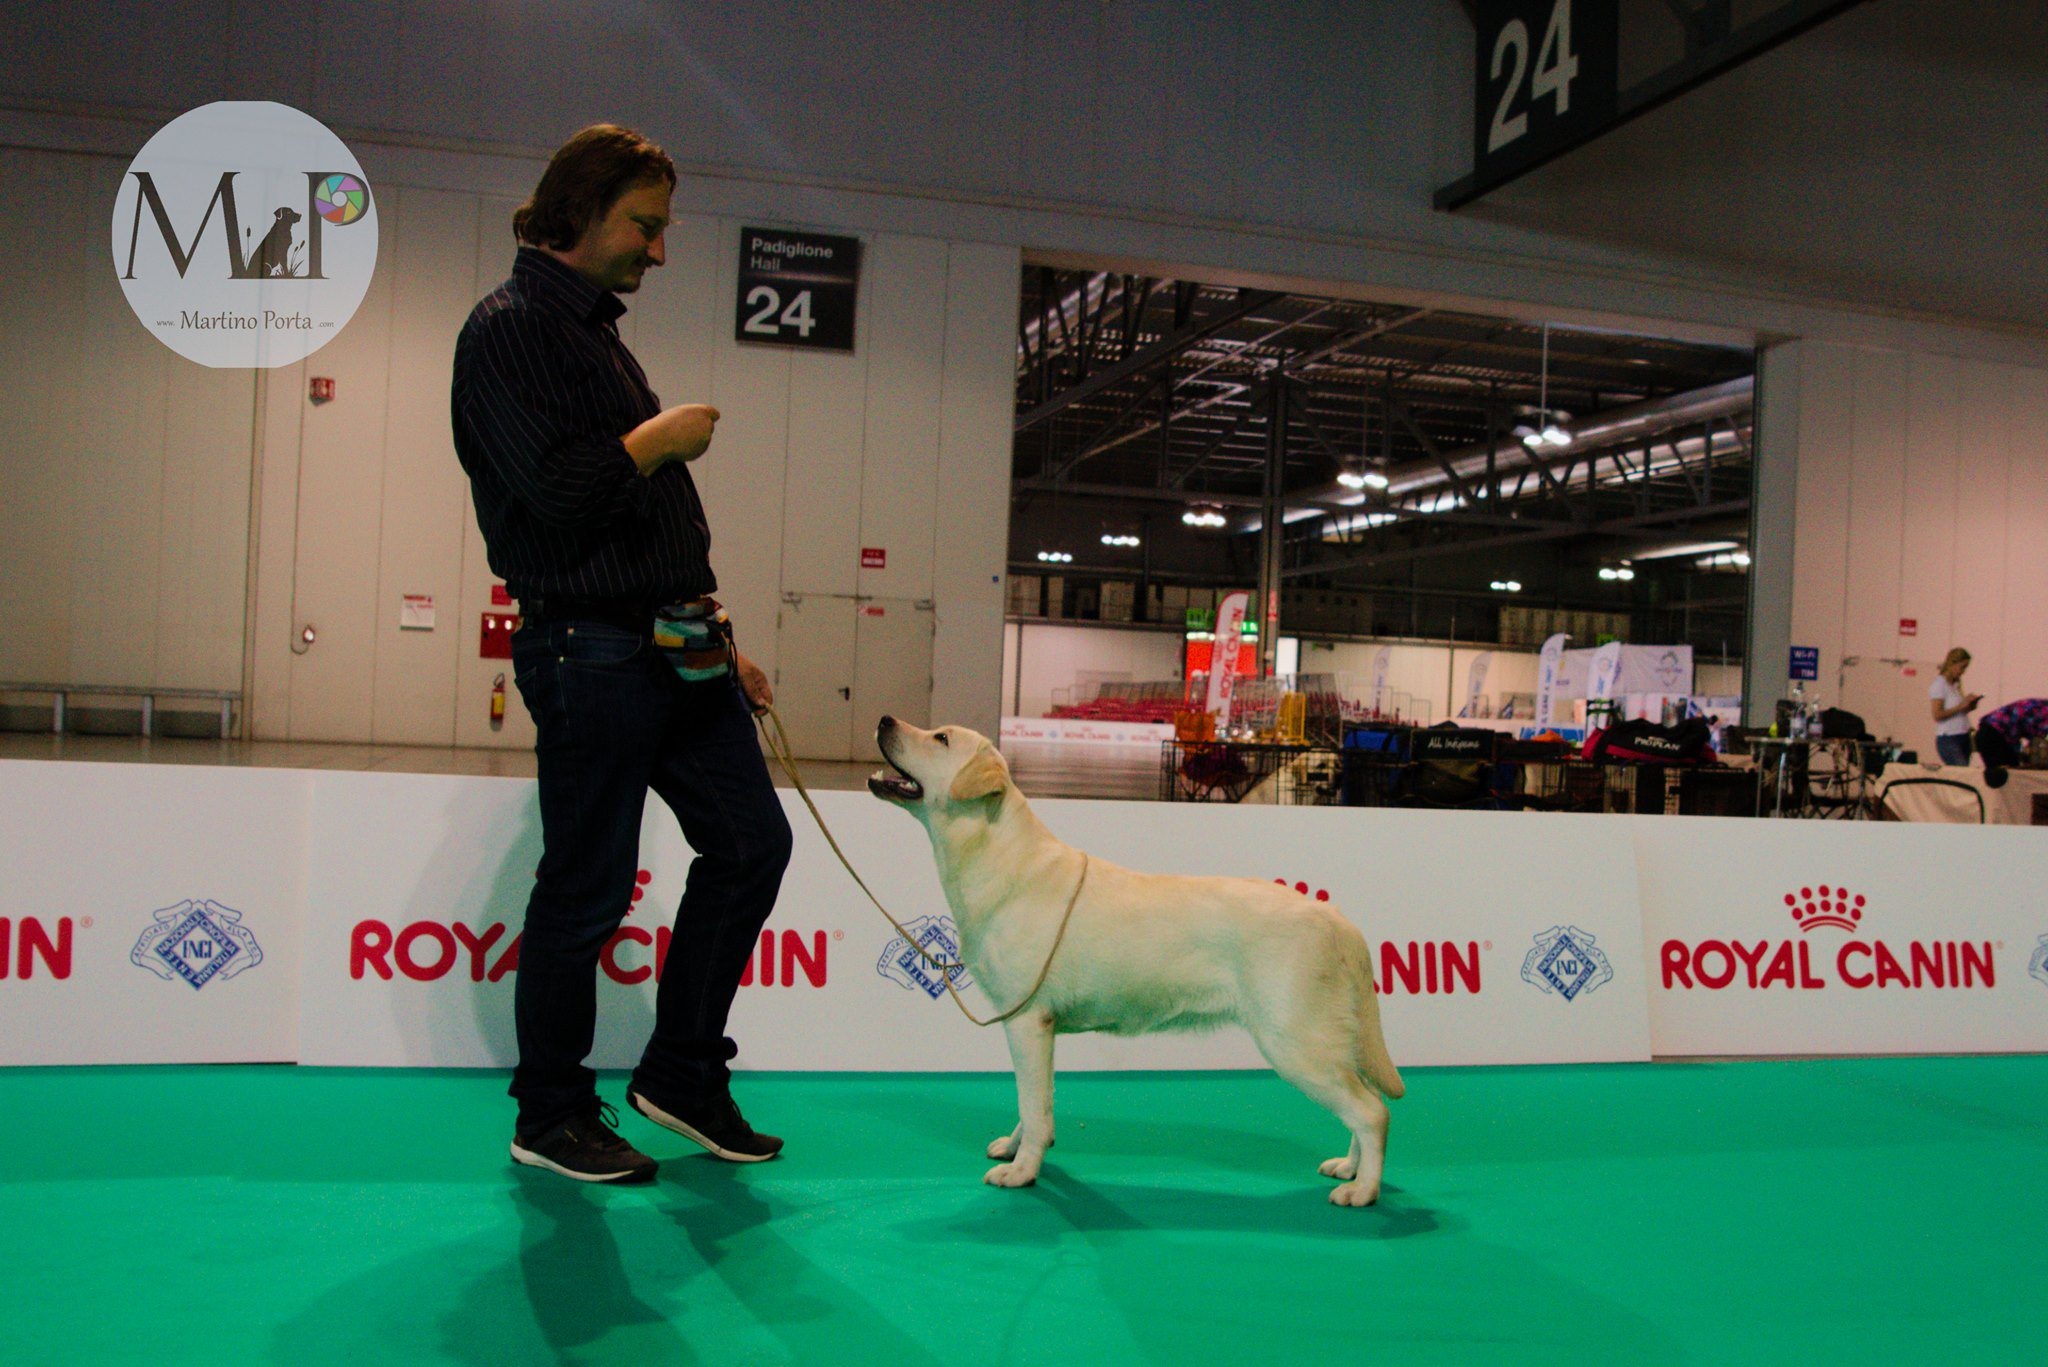 Martino Porta Bosco retriever Kennel